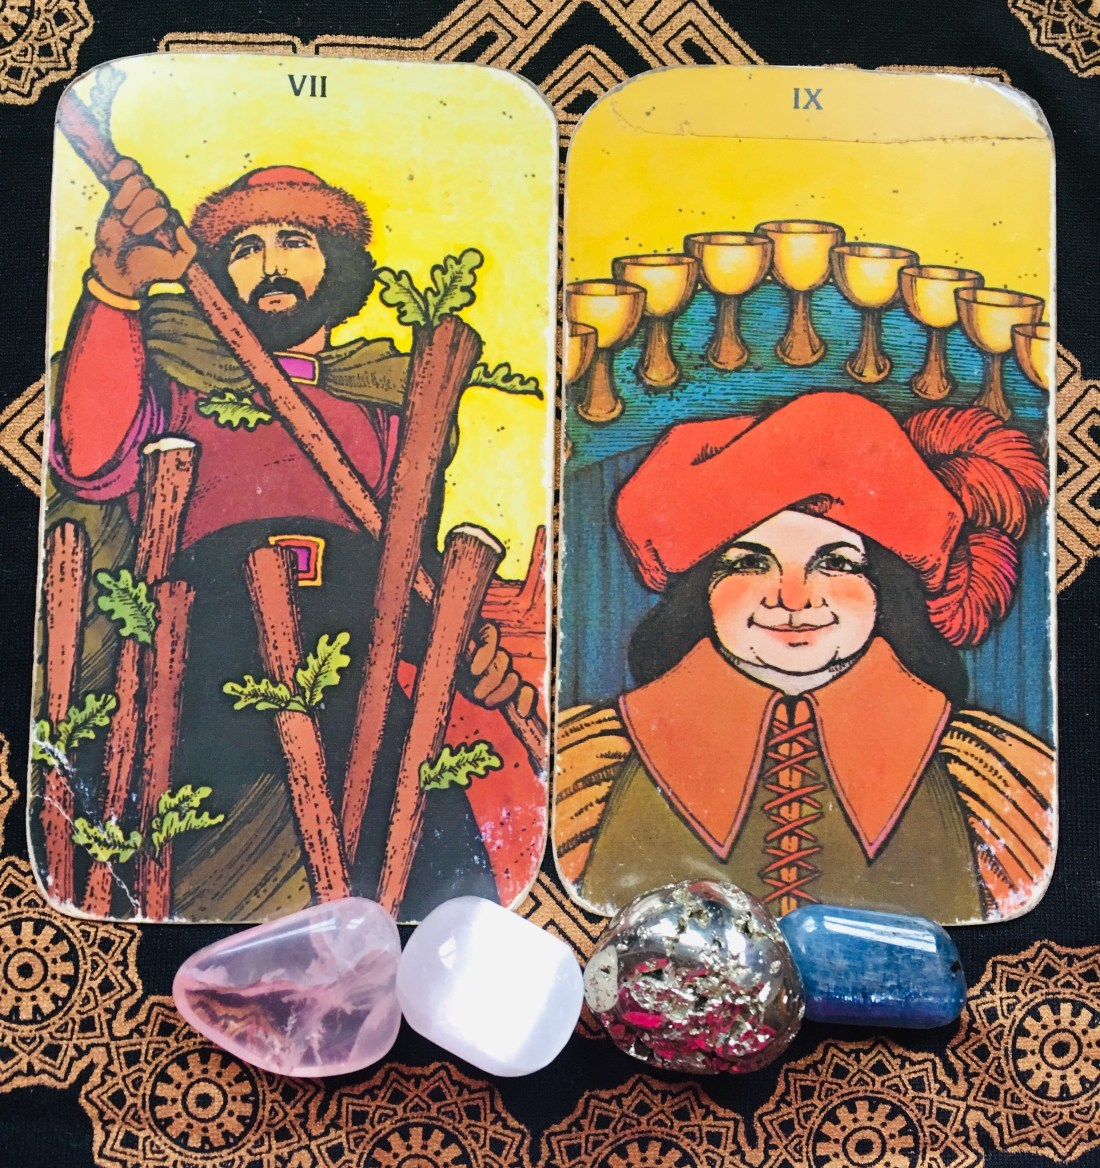 Nine of Cups and Seven of Rods, Tarot cards.